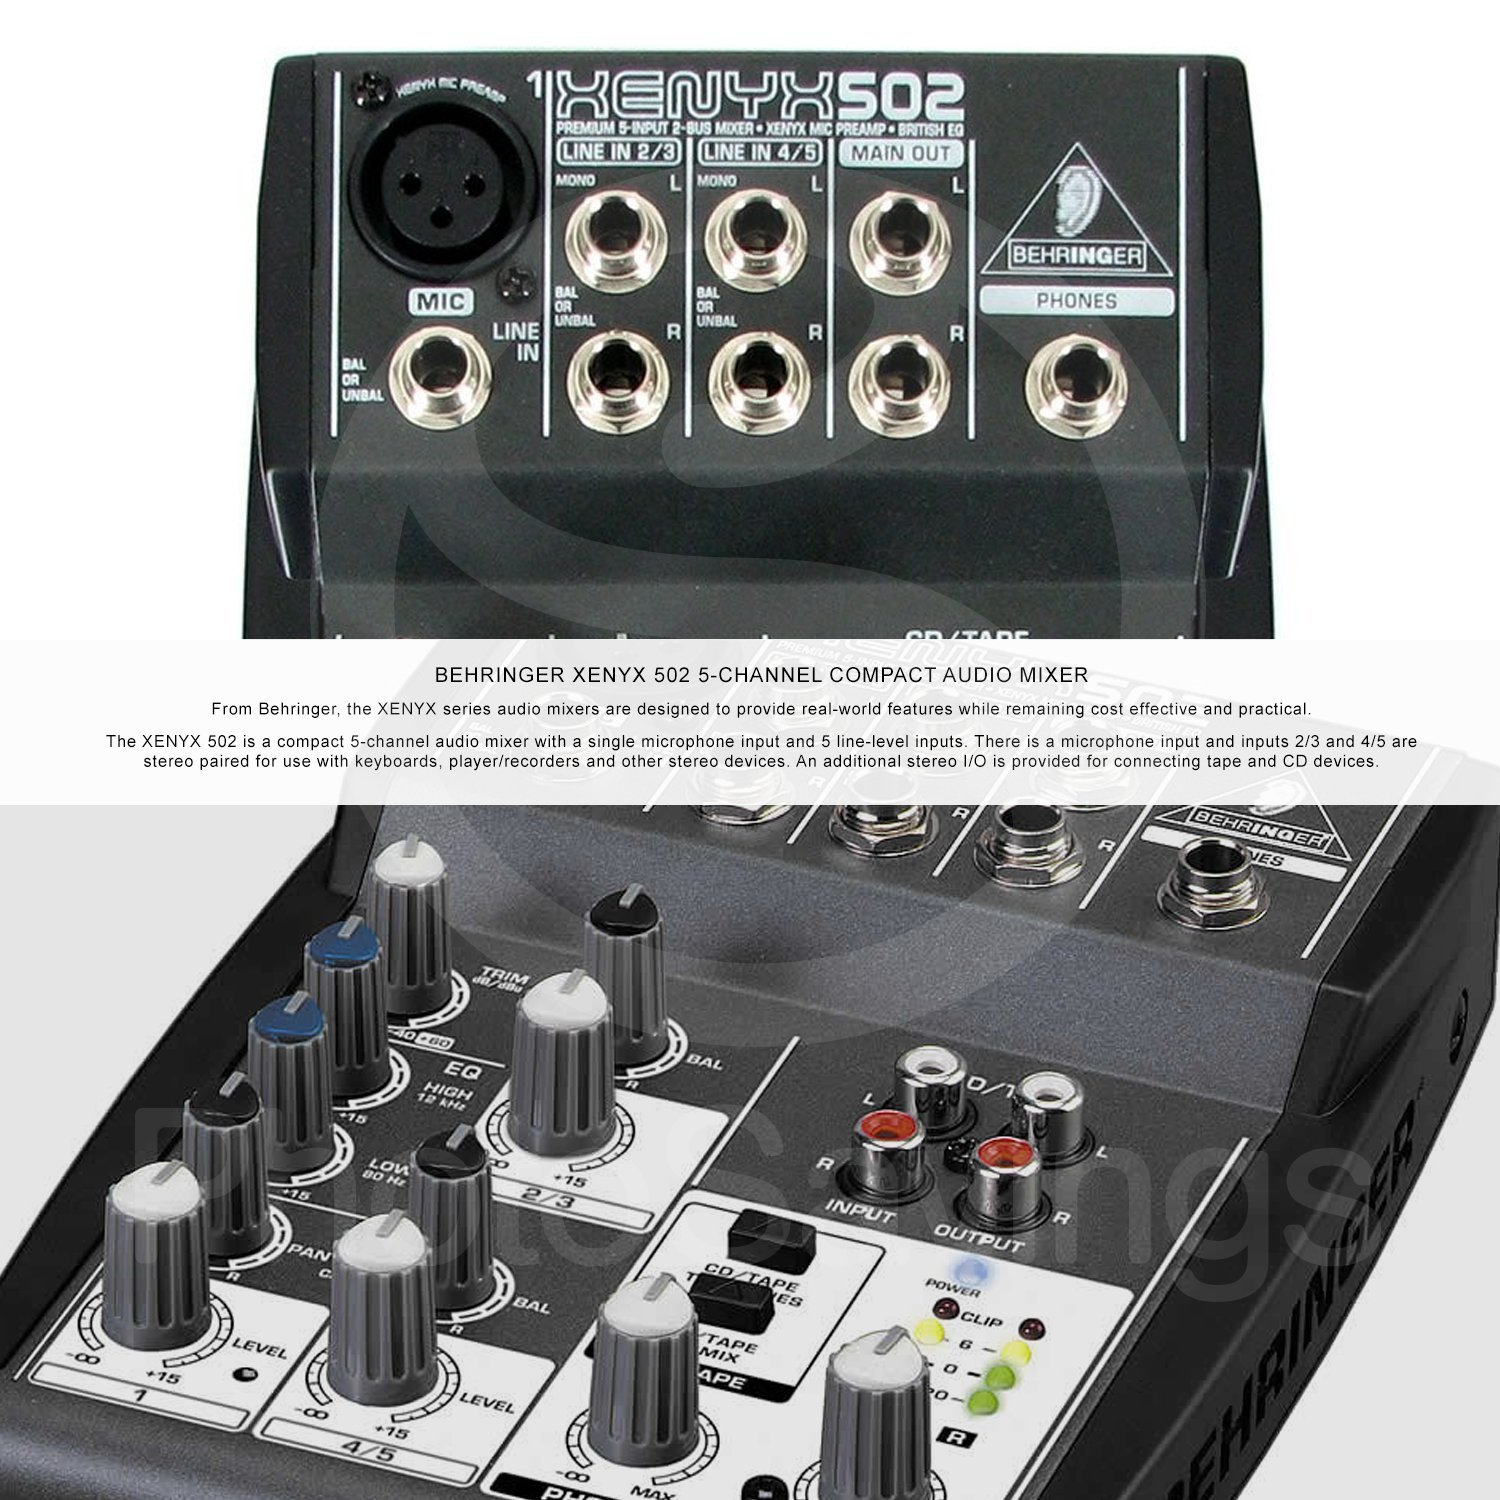 Behringer XENYX 502 5-Channel Audio Mixer and Platinum Bundle w/Stereo Headphones, Home Recording for Musicians for Dummies, 5X Cables, and Fibertique Cloth by Photo Savings (Image #2)